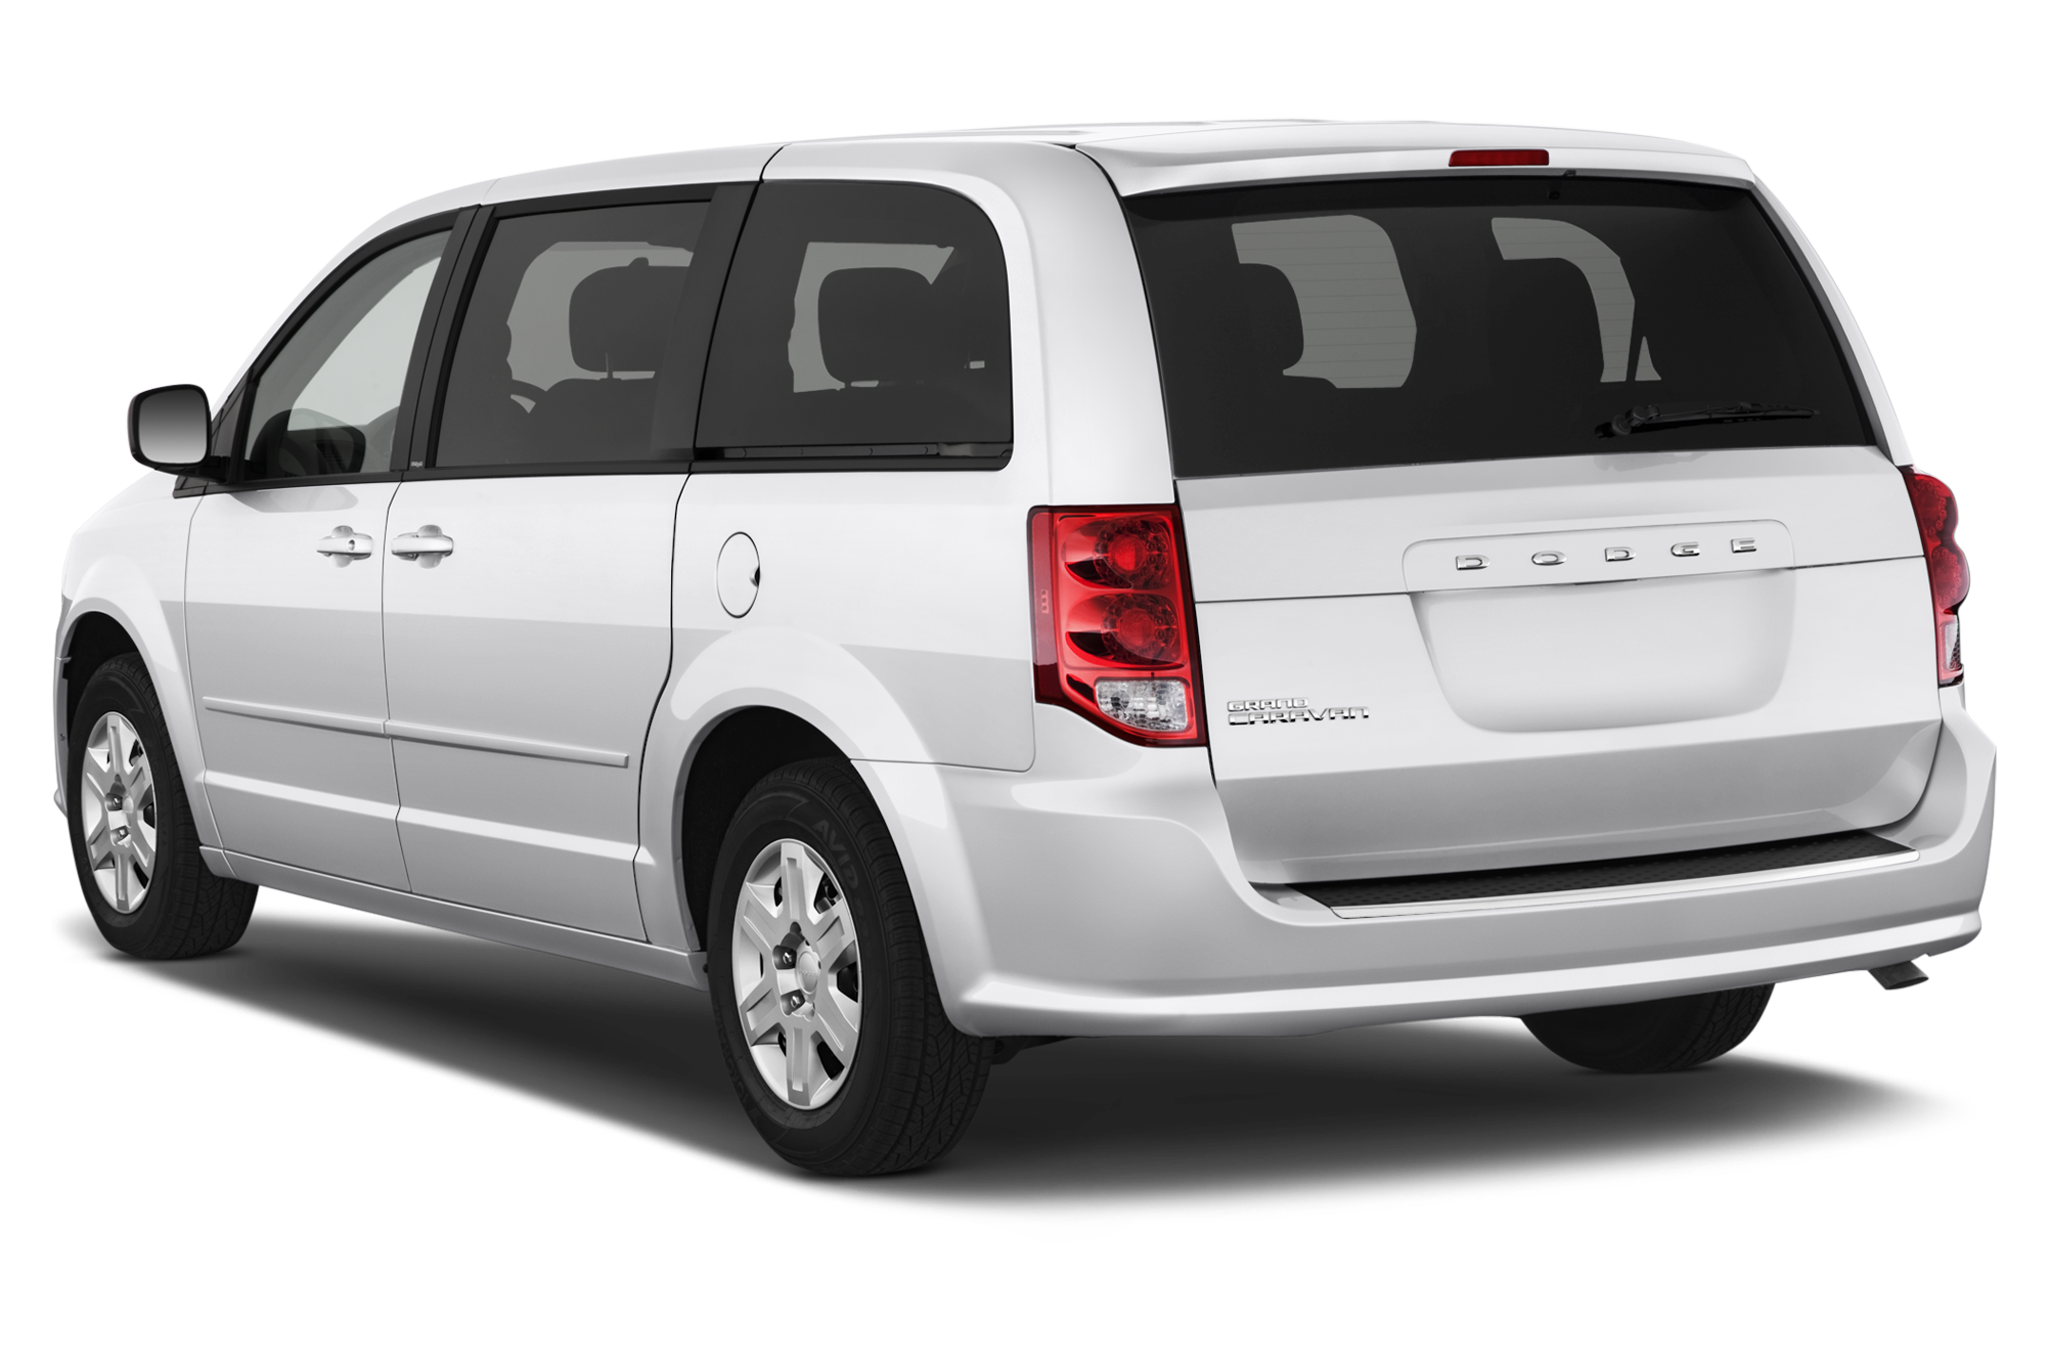 One van two names. Minivan clipart minivan dodge